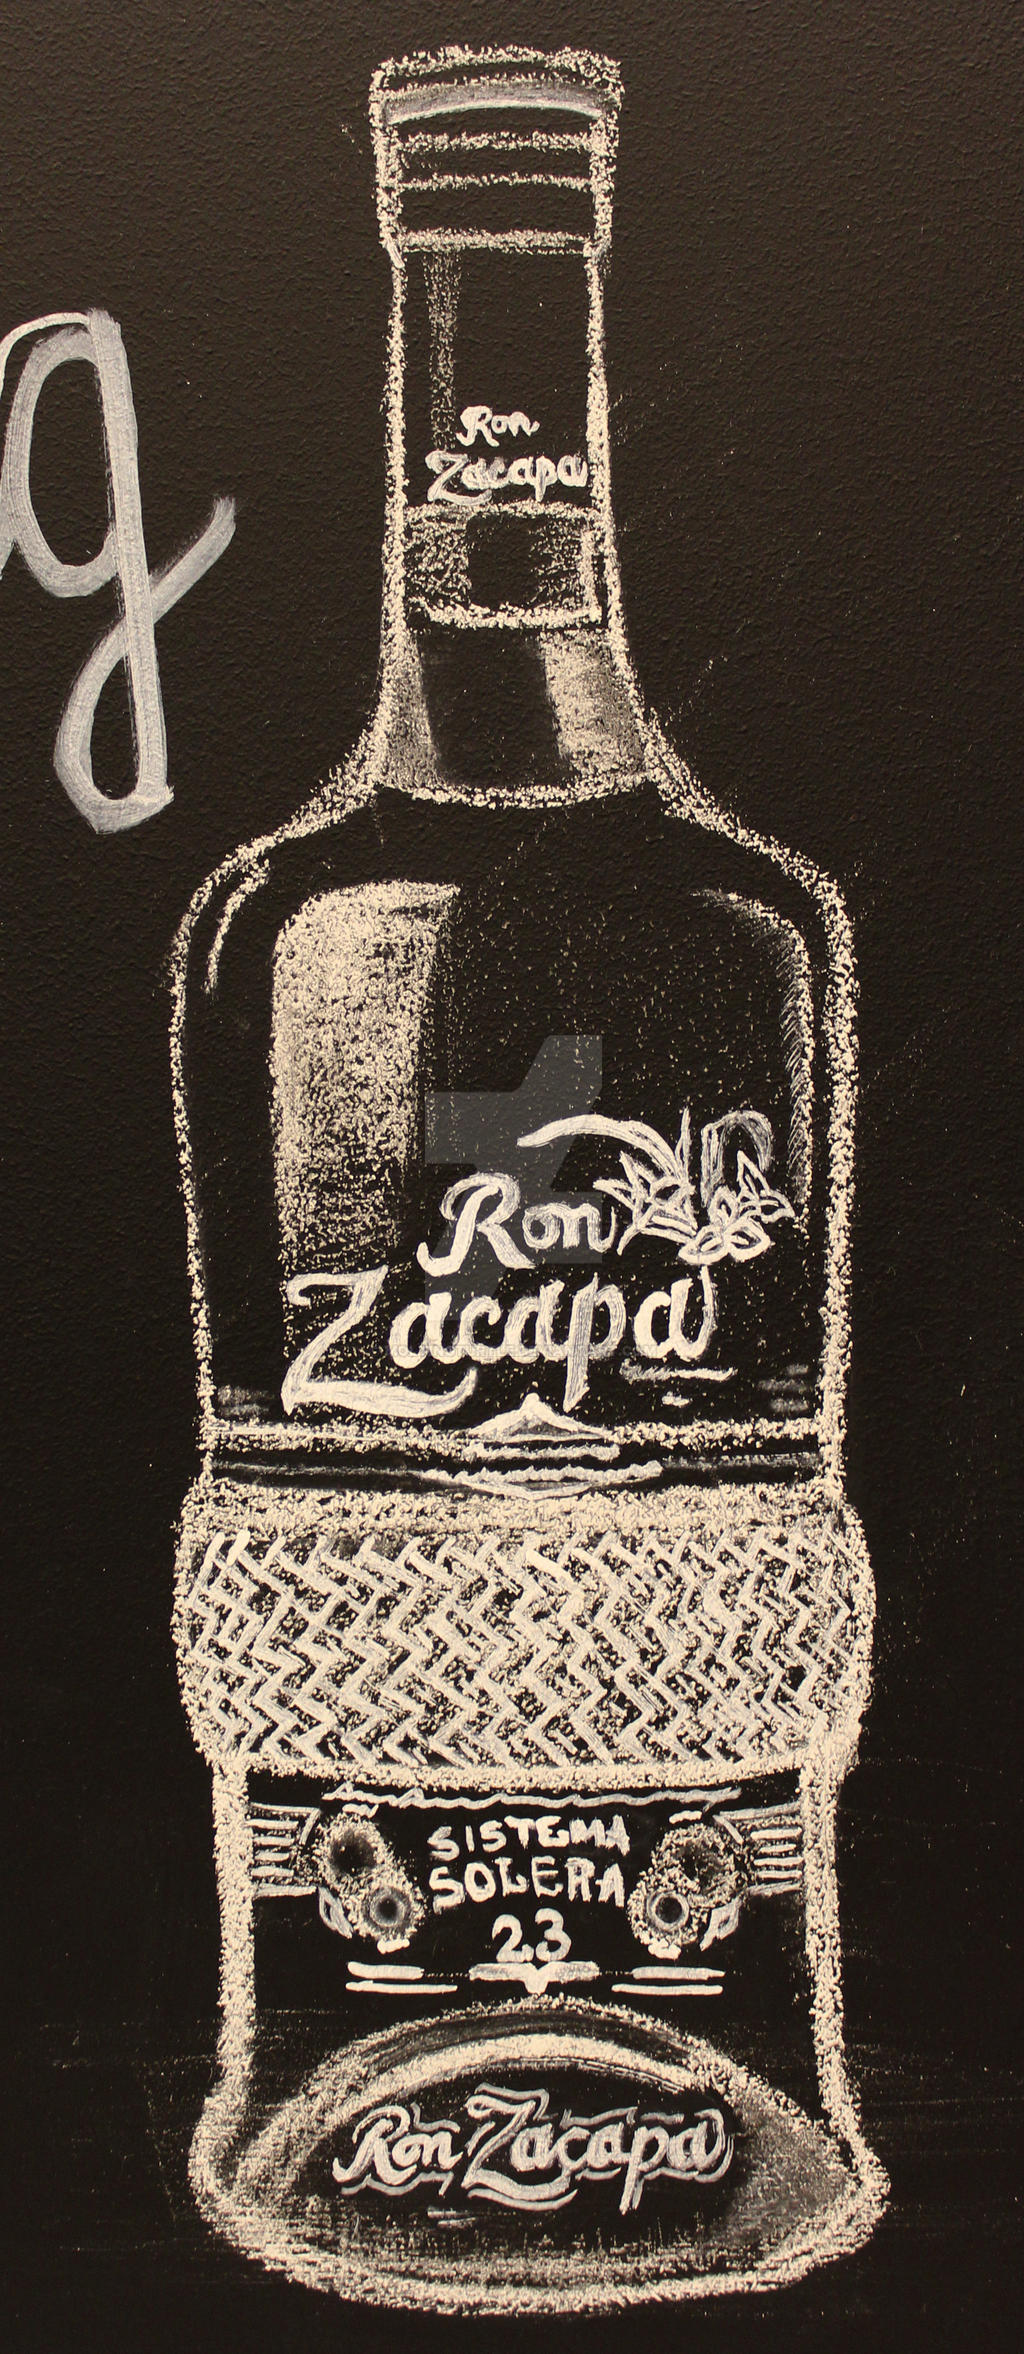 zacapa chatrooms List of products by manufacturer zacapa zacapa zacapa more showing 1 - 1 of 1 item sort.